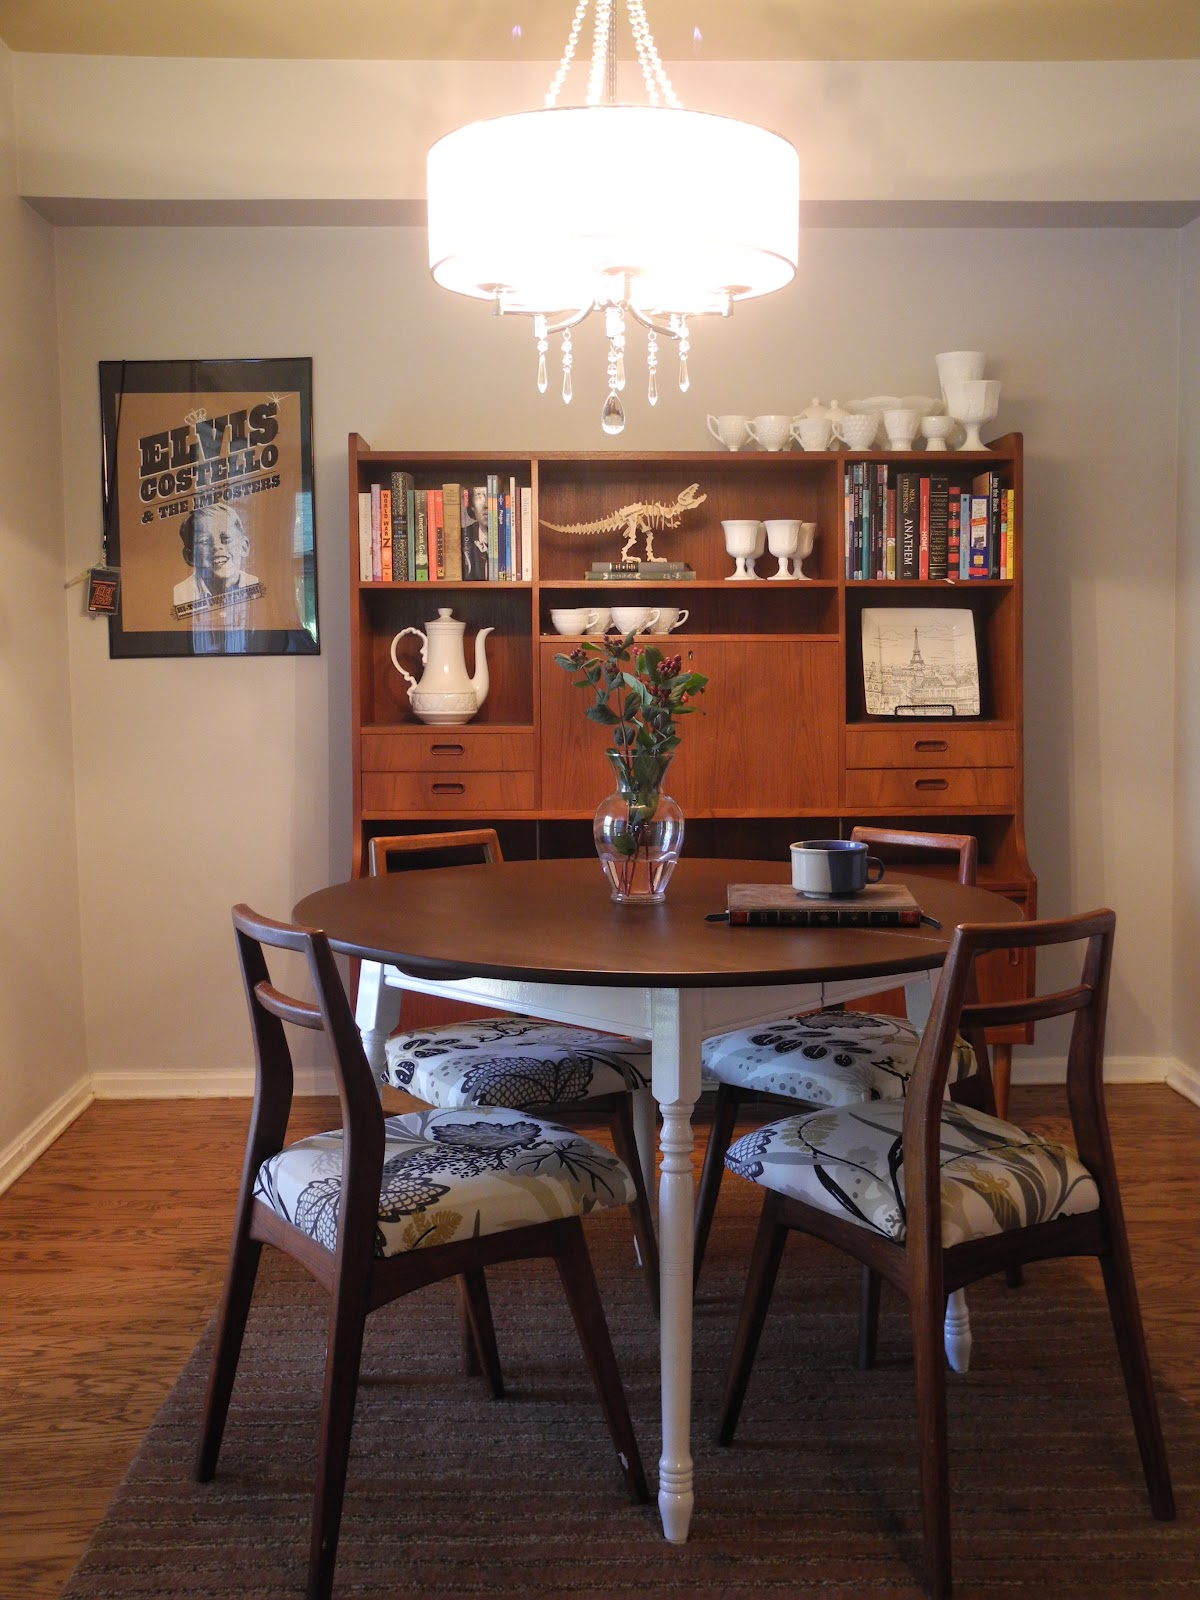 Delightful Chandelier Above Minimalist Round Table and Chair Beside Bookshelve